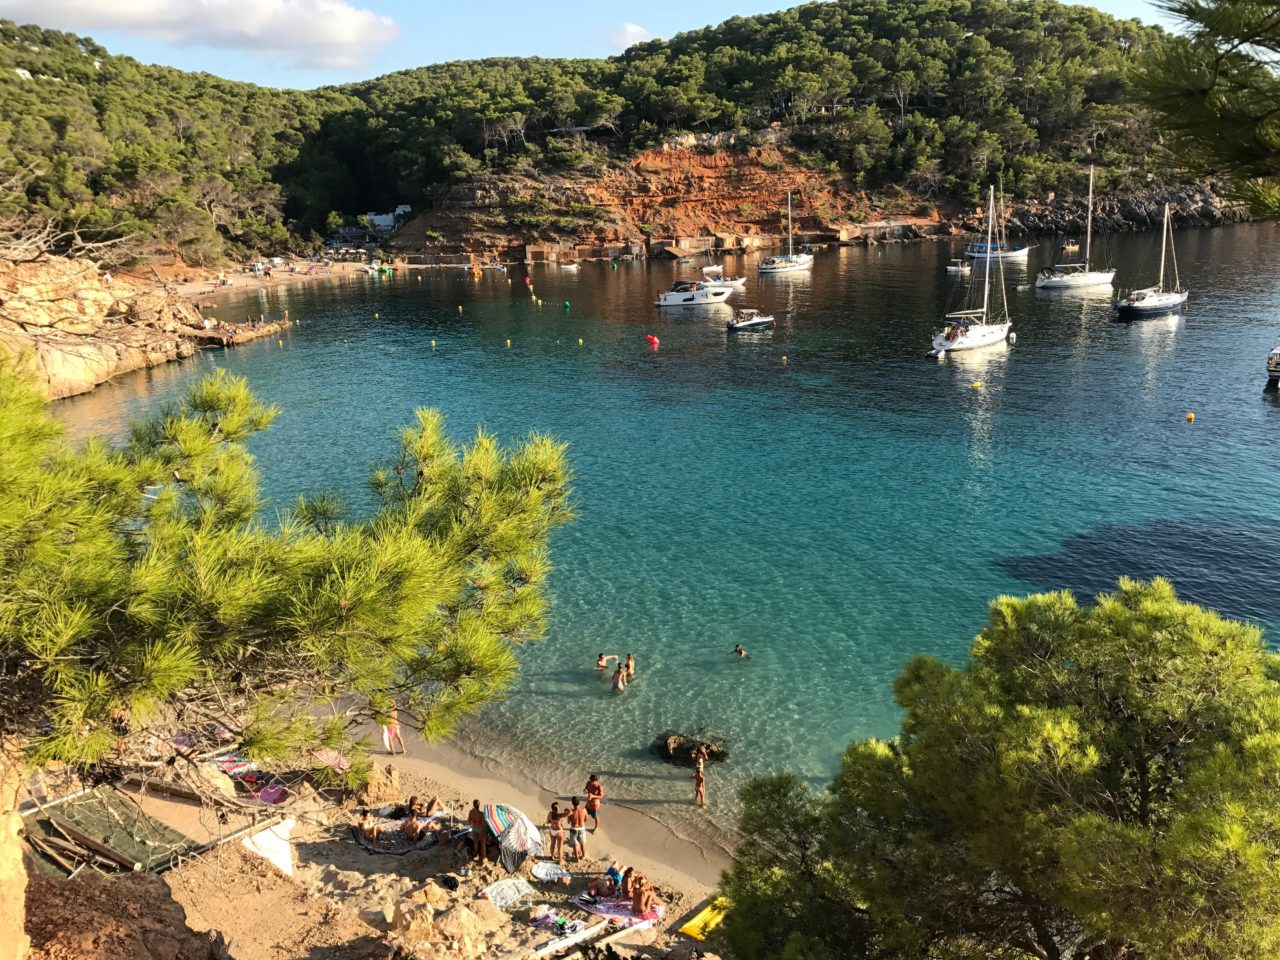 Tropical Beach In The Afternoon With Boats And Swimmers